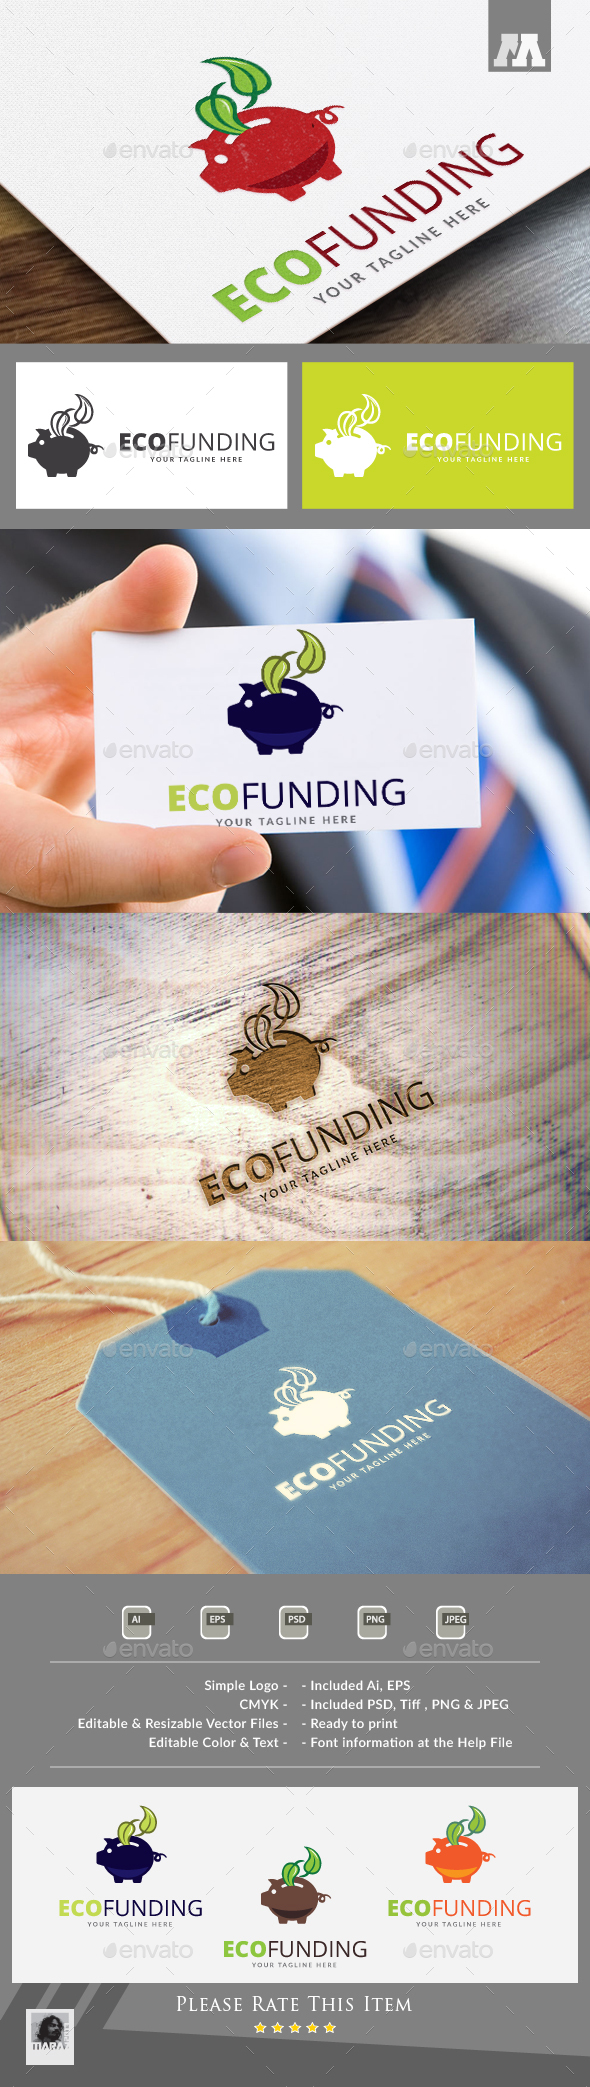 Eco Funding Logo - Nature Logo Templates